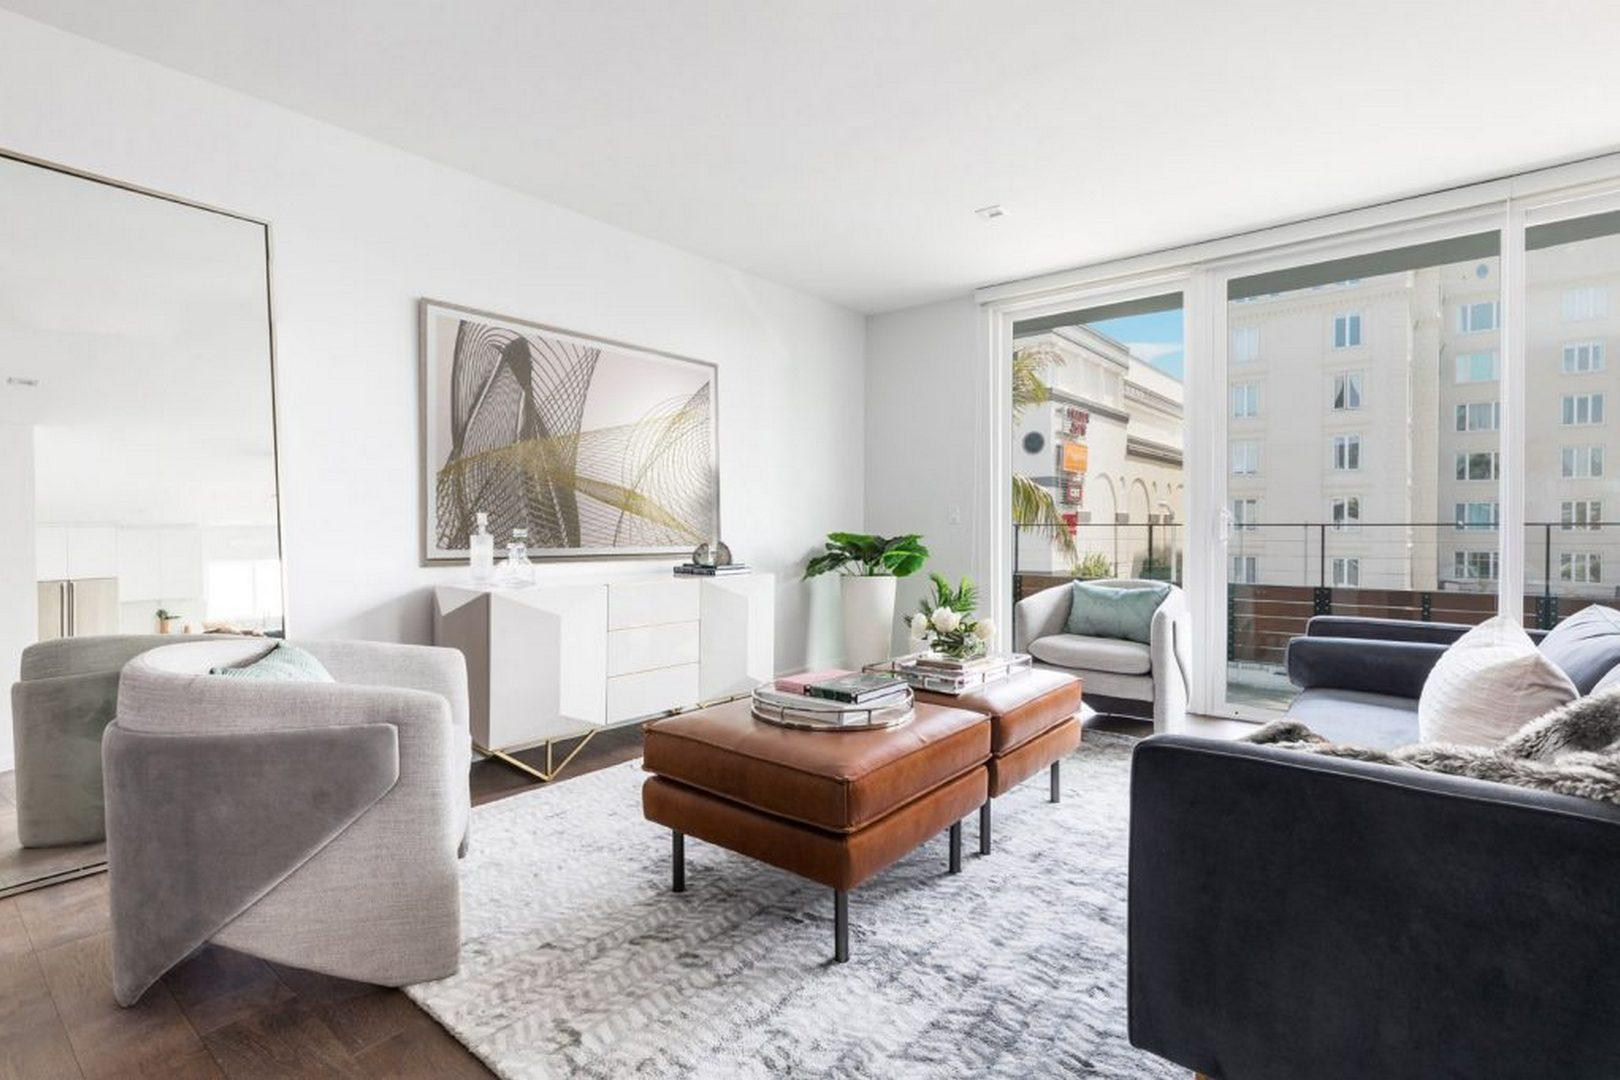 1425 North Crescent Heights #101, West Hollywood, CA - $5,995 USD/ month